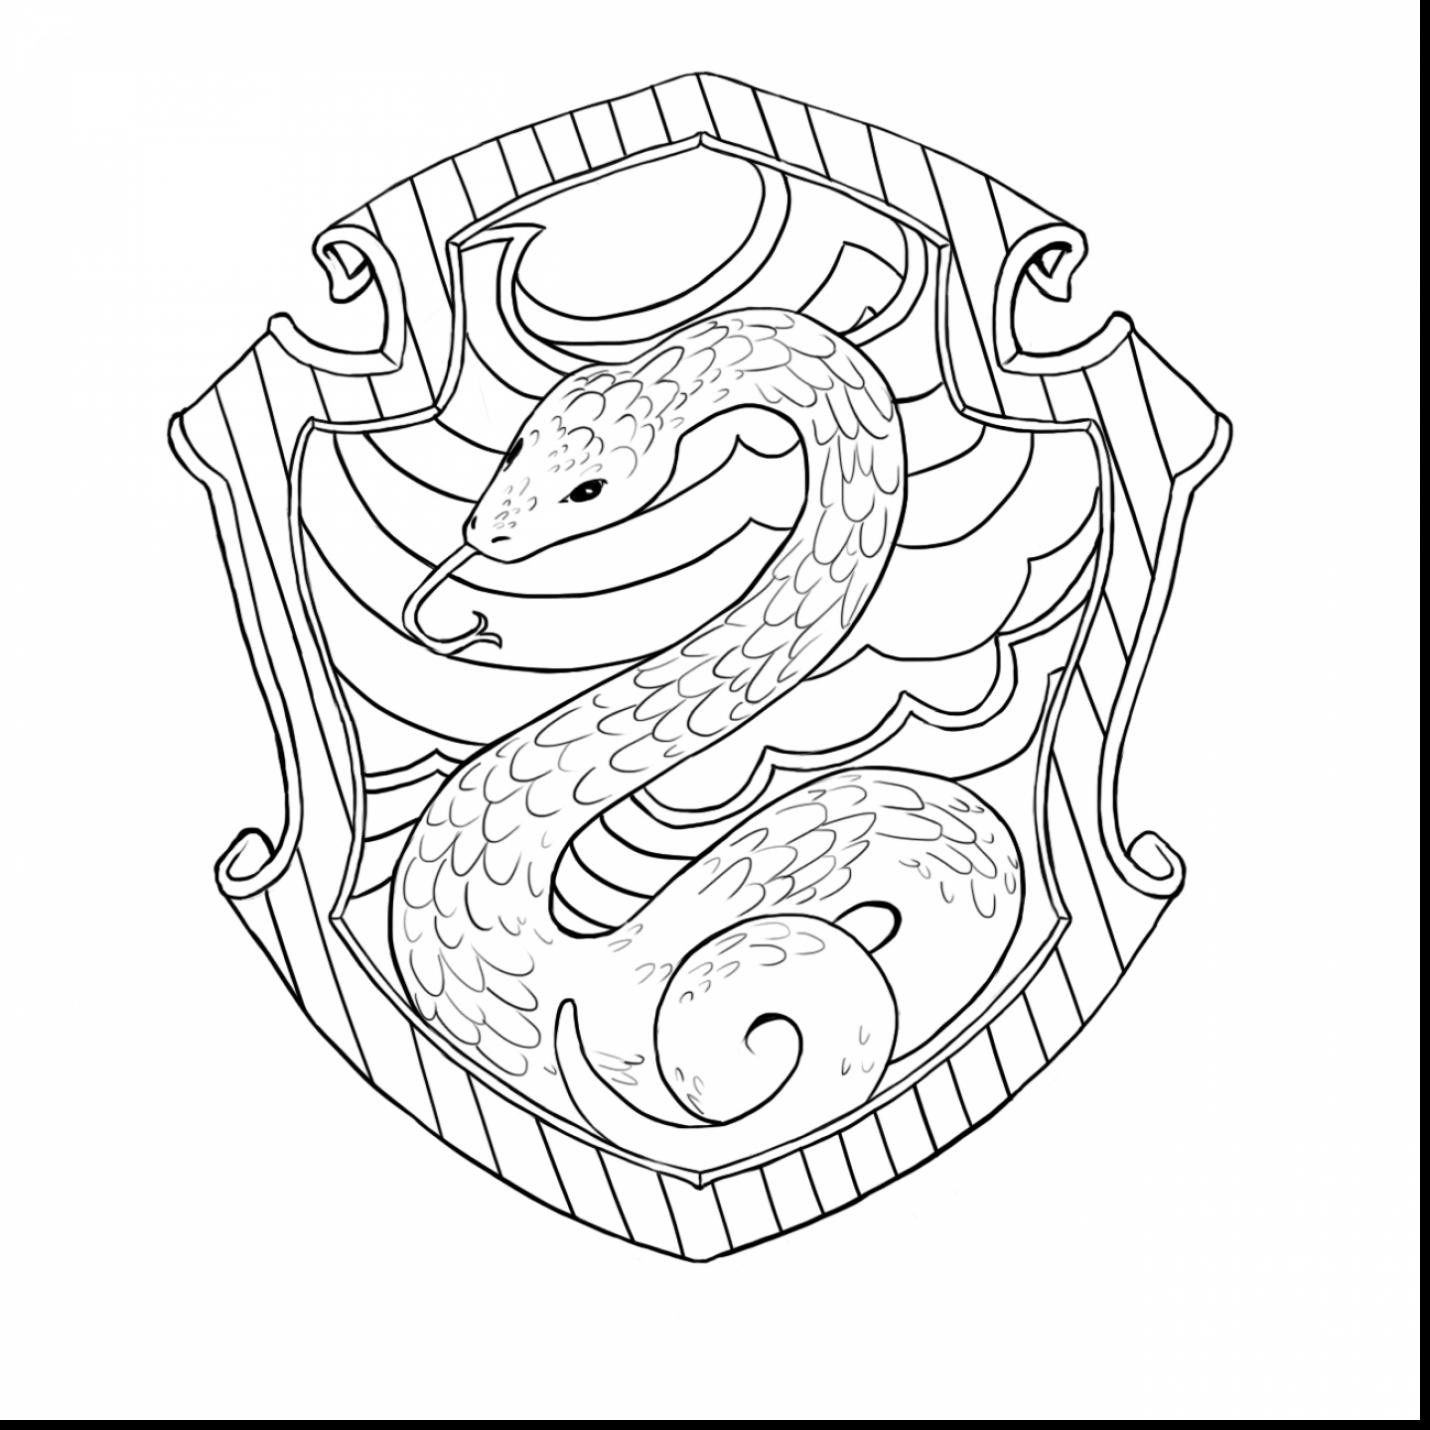 1430x1430 Best Of Harry Potter Fluffy Coloring Pages